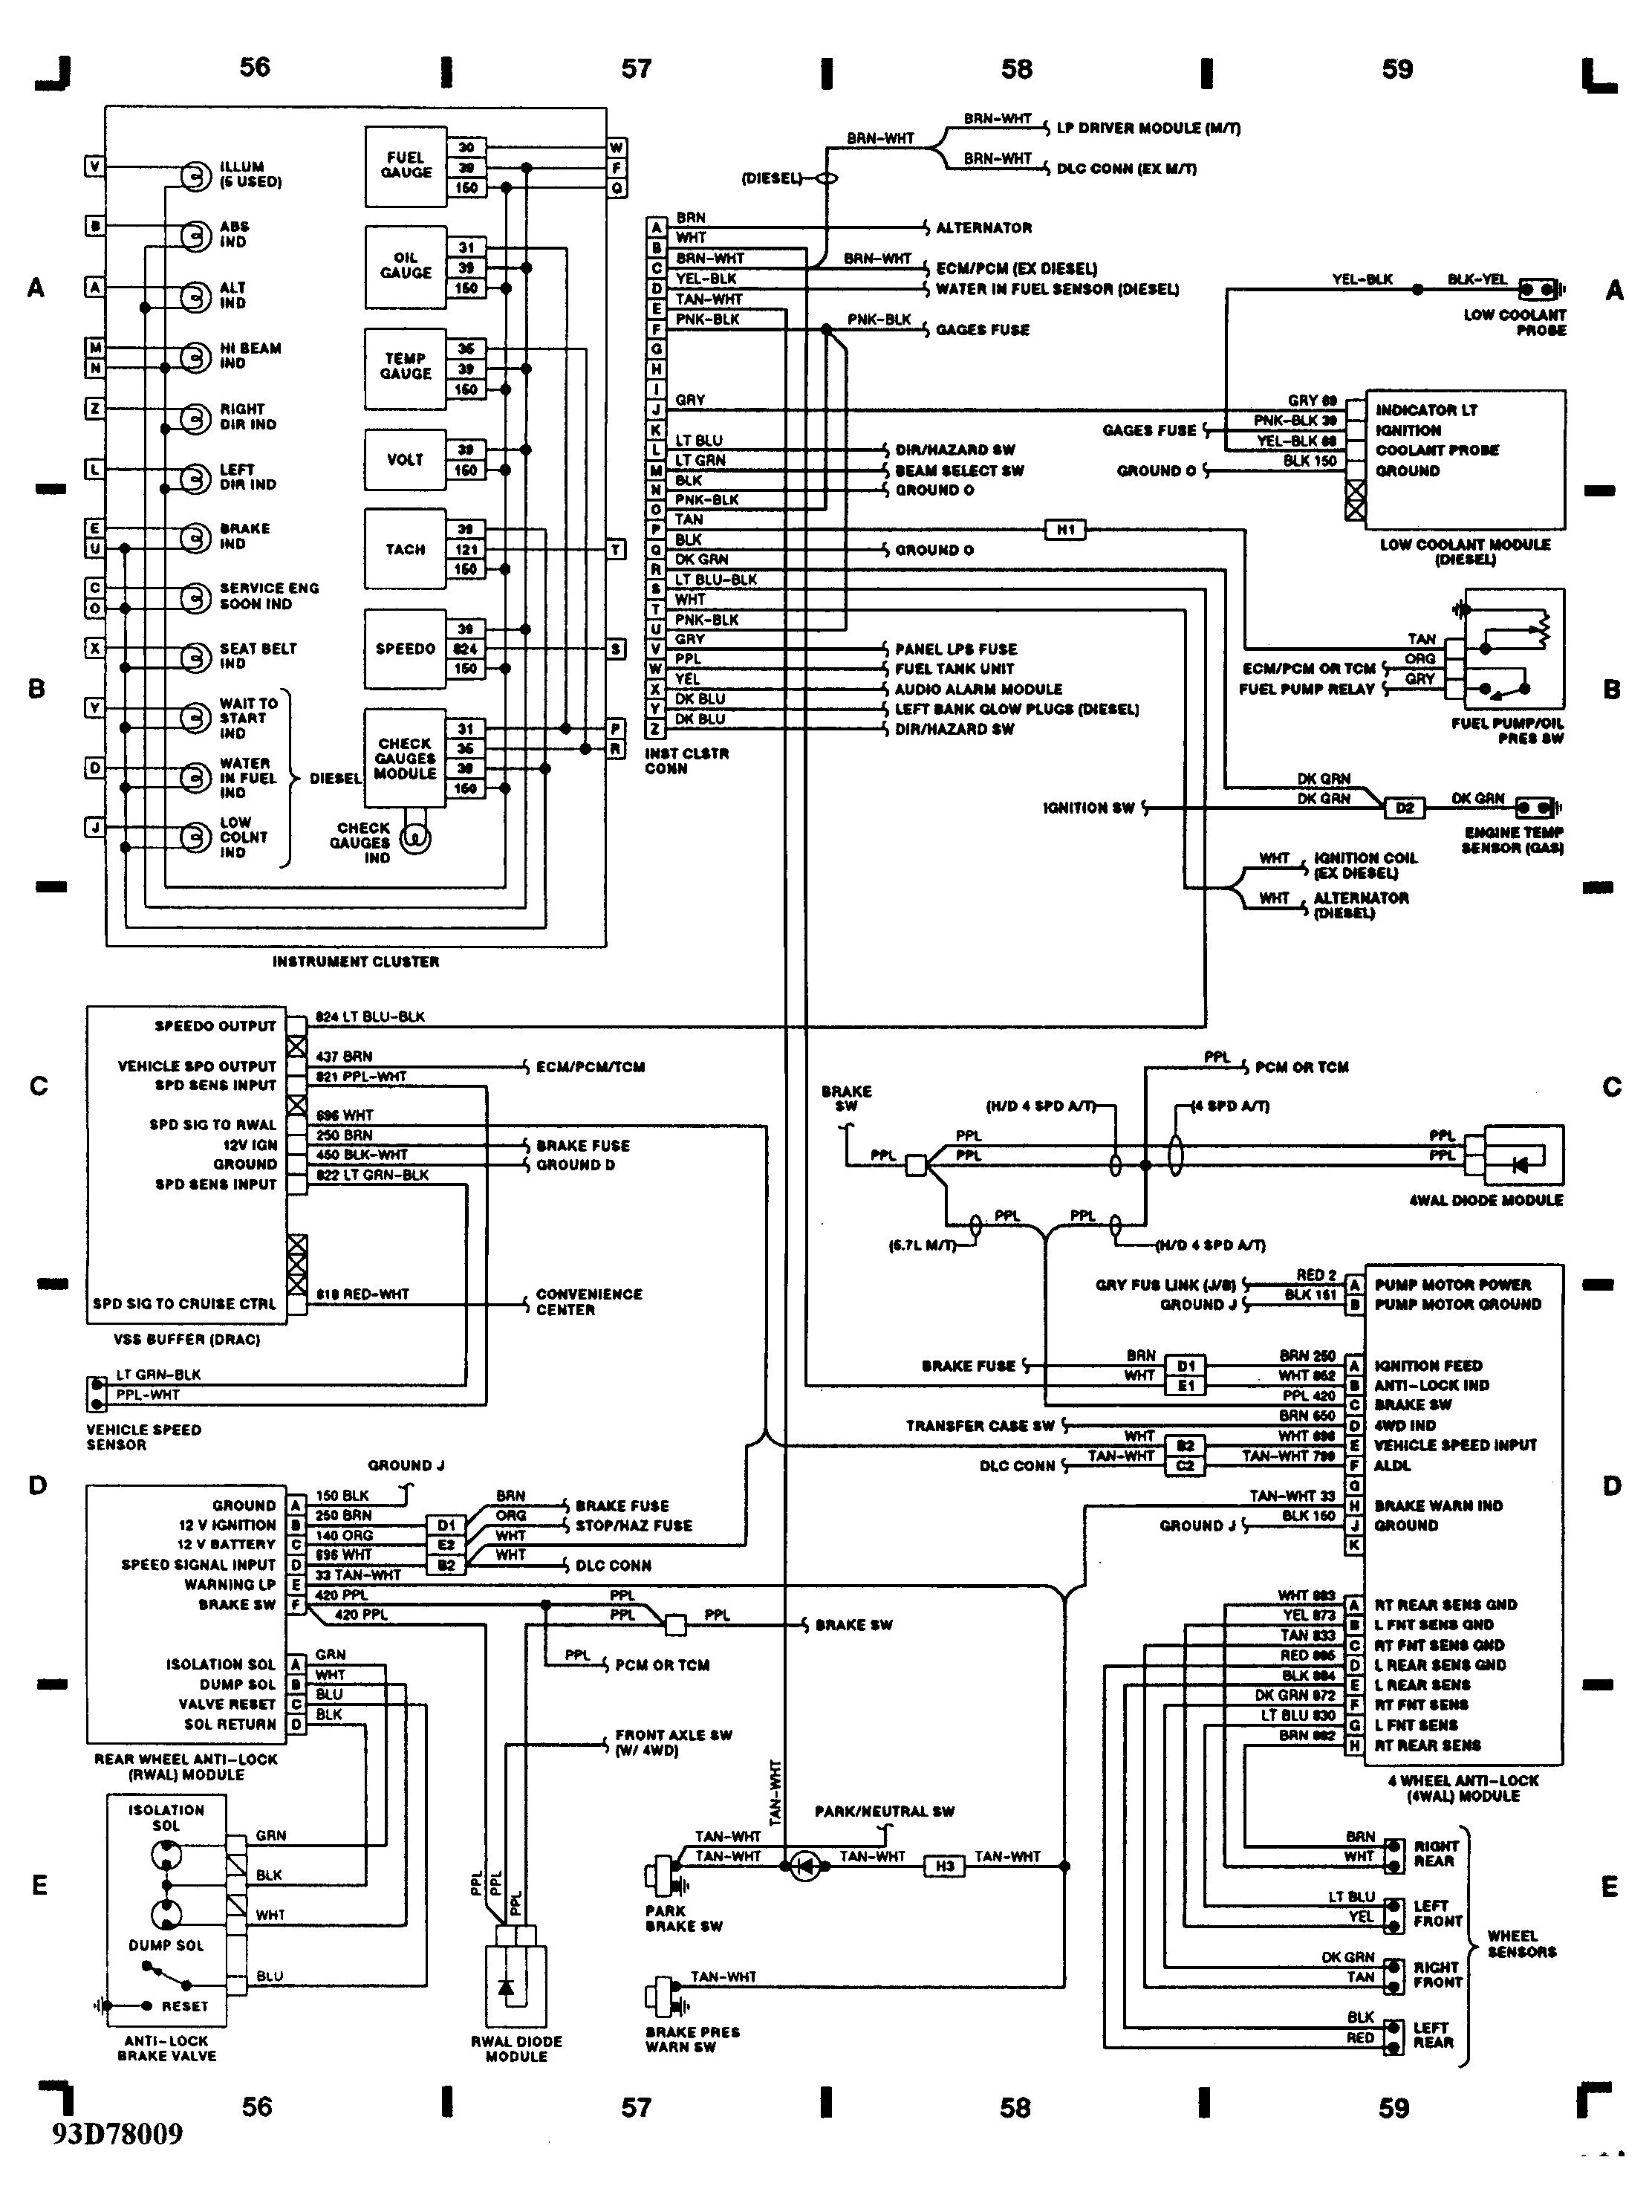 Wiring Diagram for Tail Lights Chevy Silverado Wiring Diagram 1993 Beautiful I Have A 93 with Od Of Wiring Diagram for Tail Lights